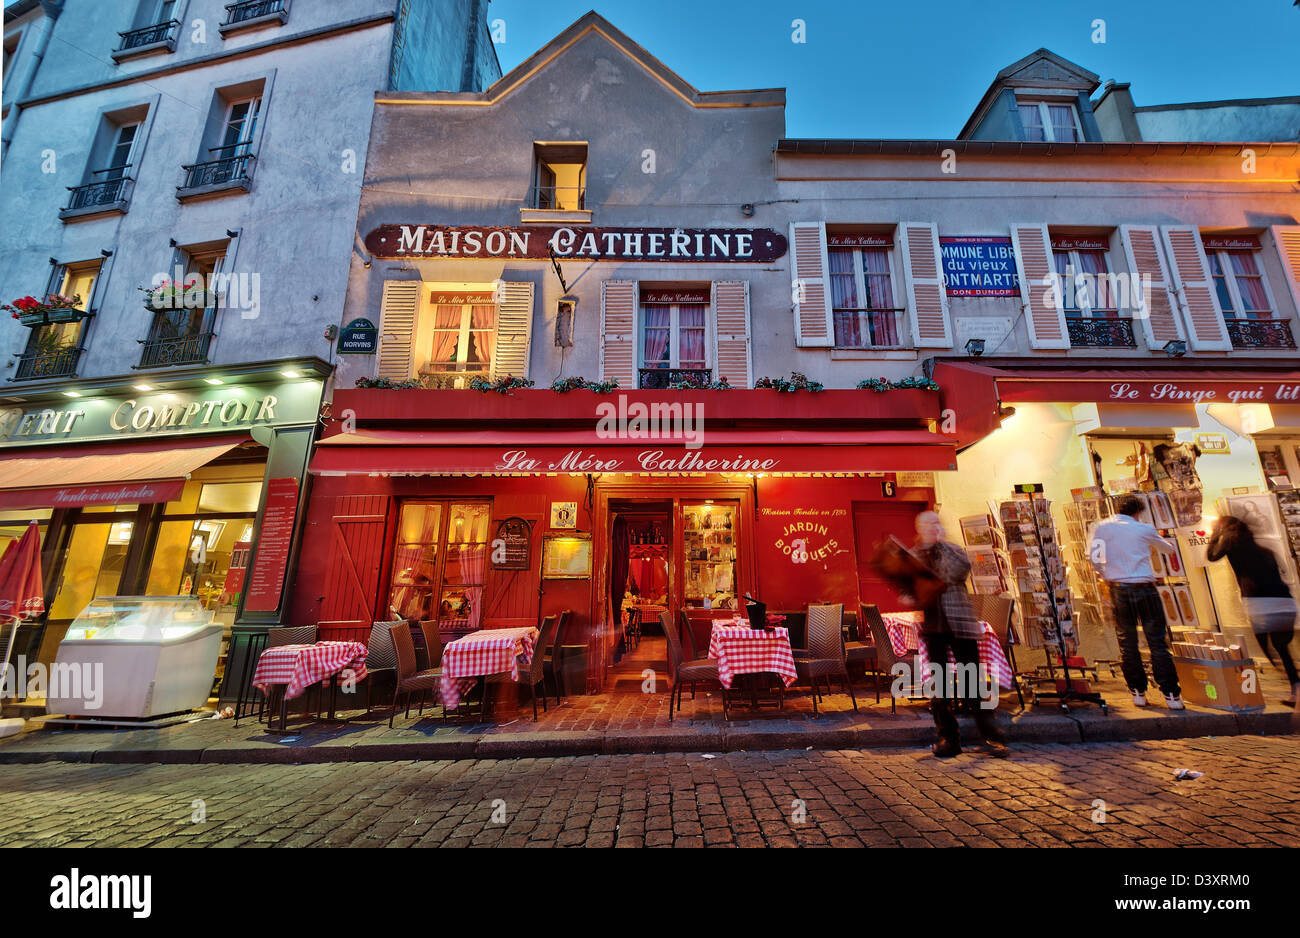 Maison Catherine And Restaurant La Mere Catherine Near Place Du Tertre Montmartre